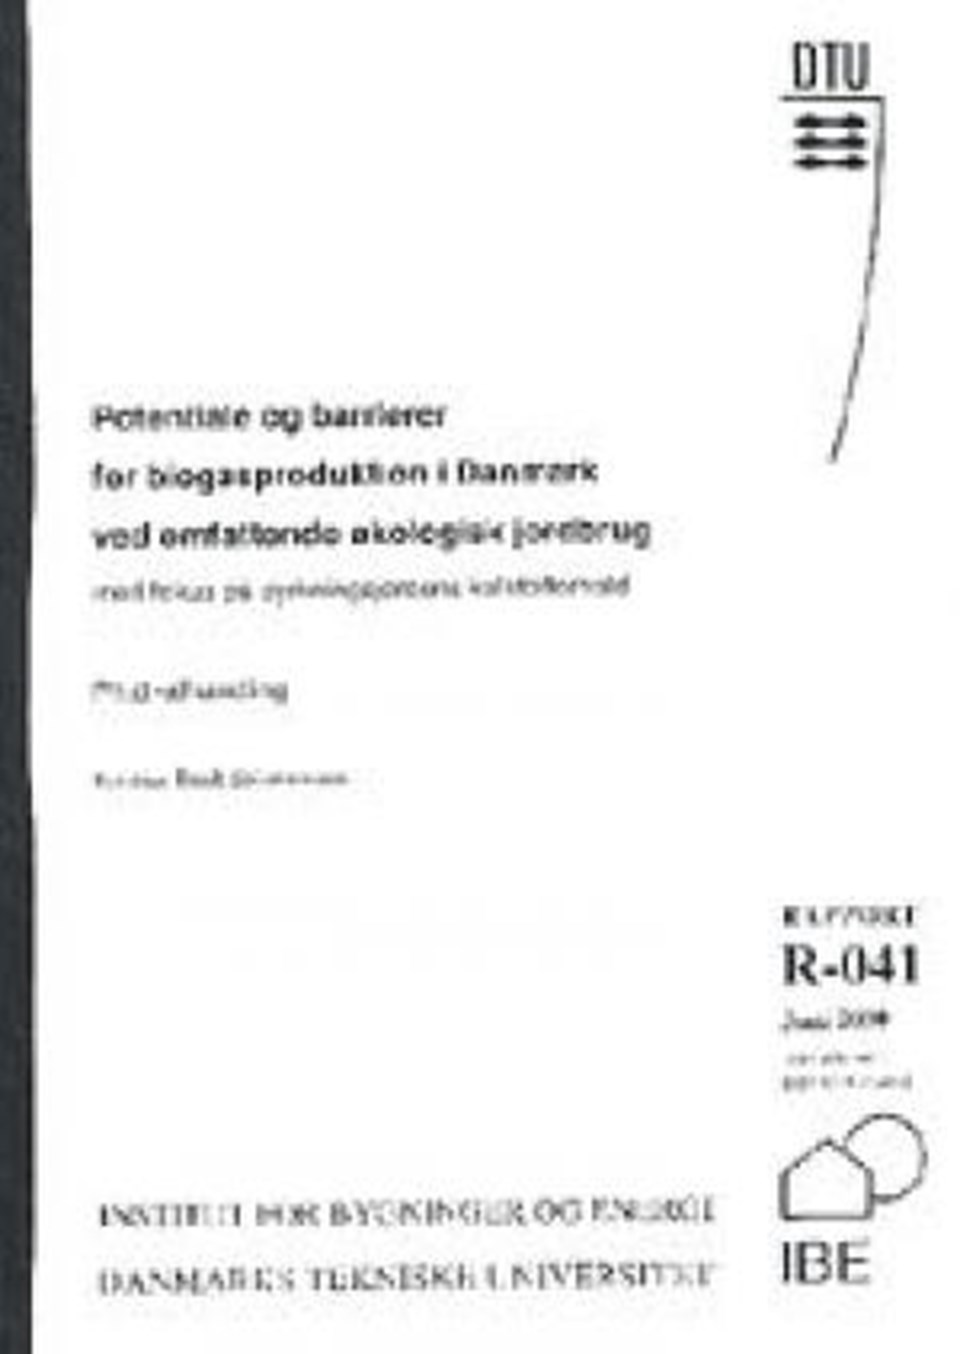 Potentiale og barrierer for biogasproduktion i Dan